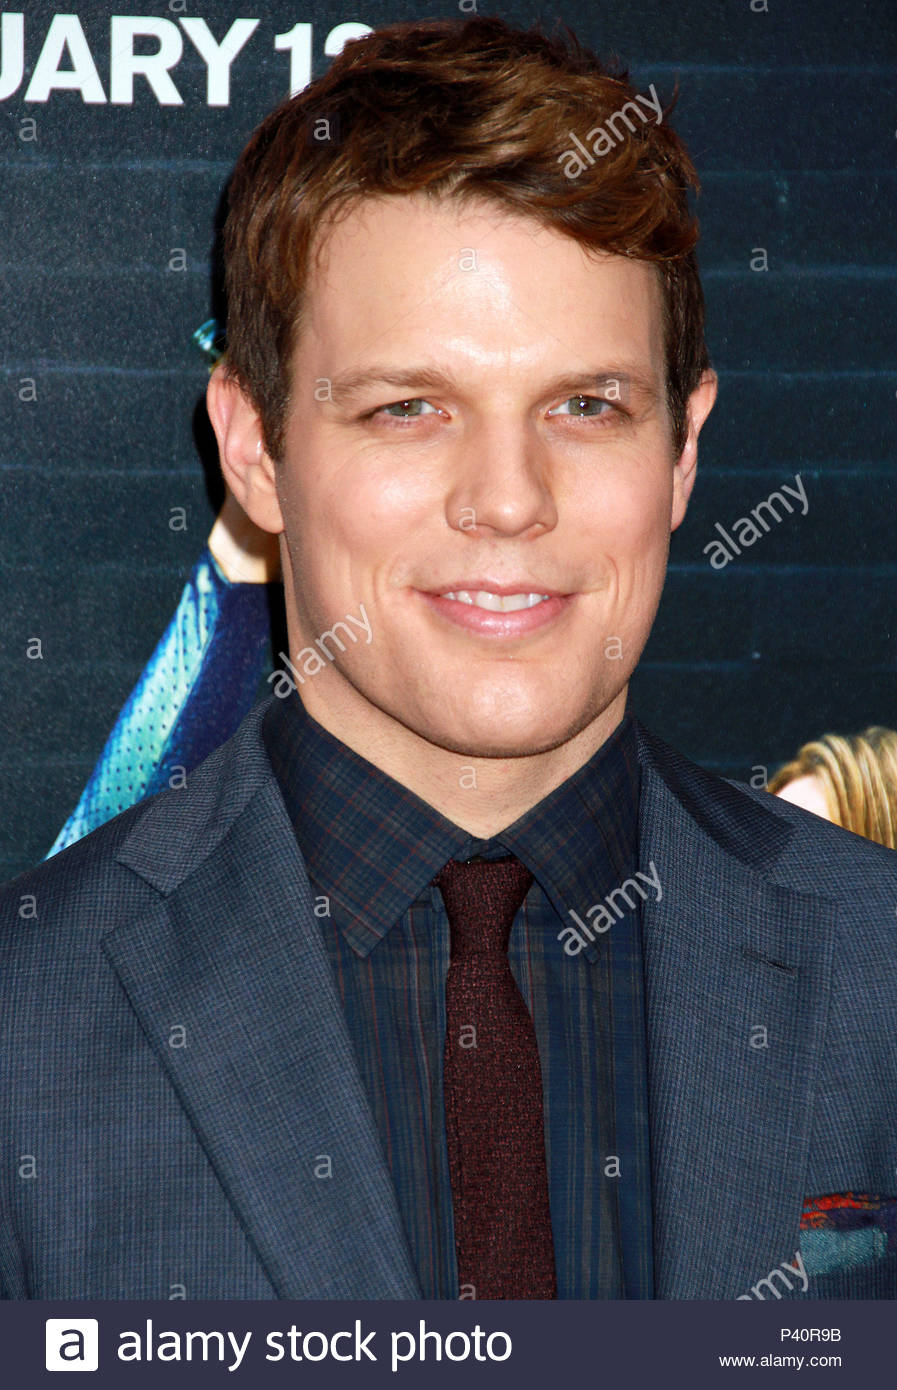 Jake lacy no just jared usagebr celebrities attend how to be jake lacy no just jared usage celebrities attend how to be single premiere in new york ccuart Images